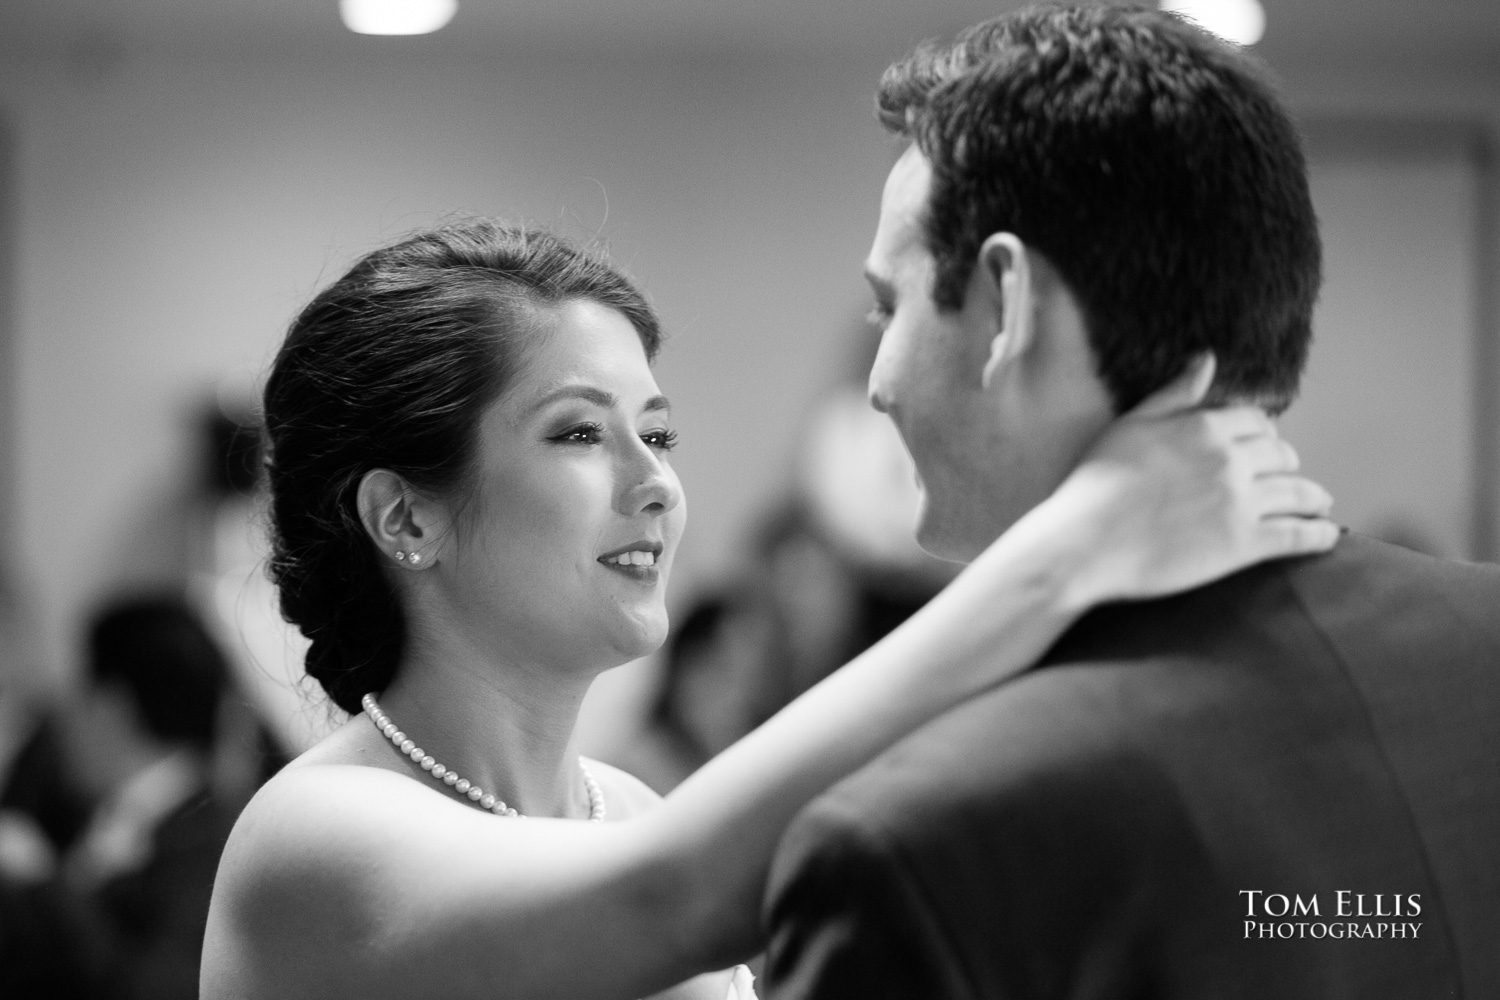 Black and white photo of bride and groom's first dance as a newly married couple